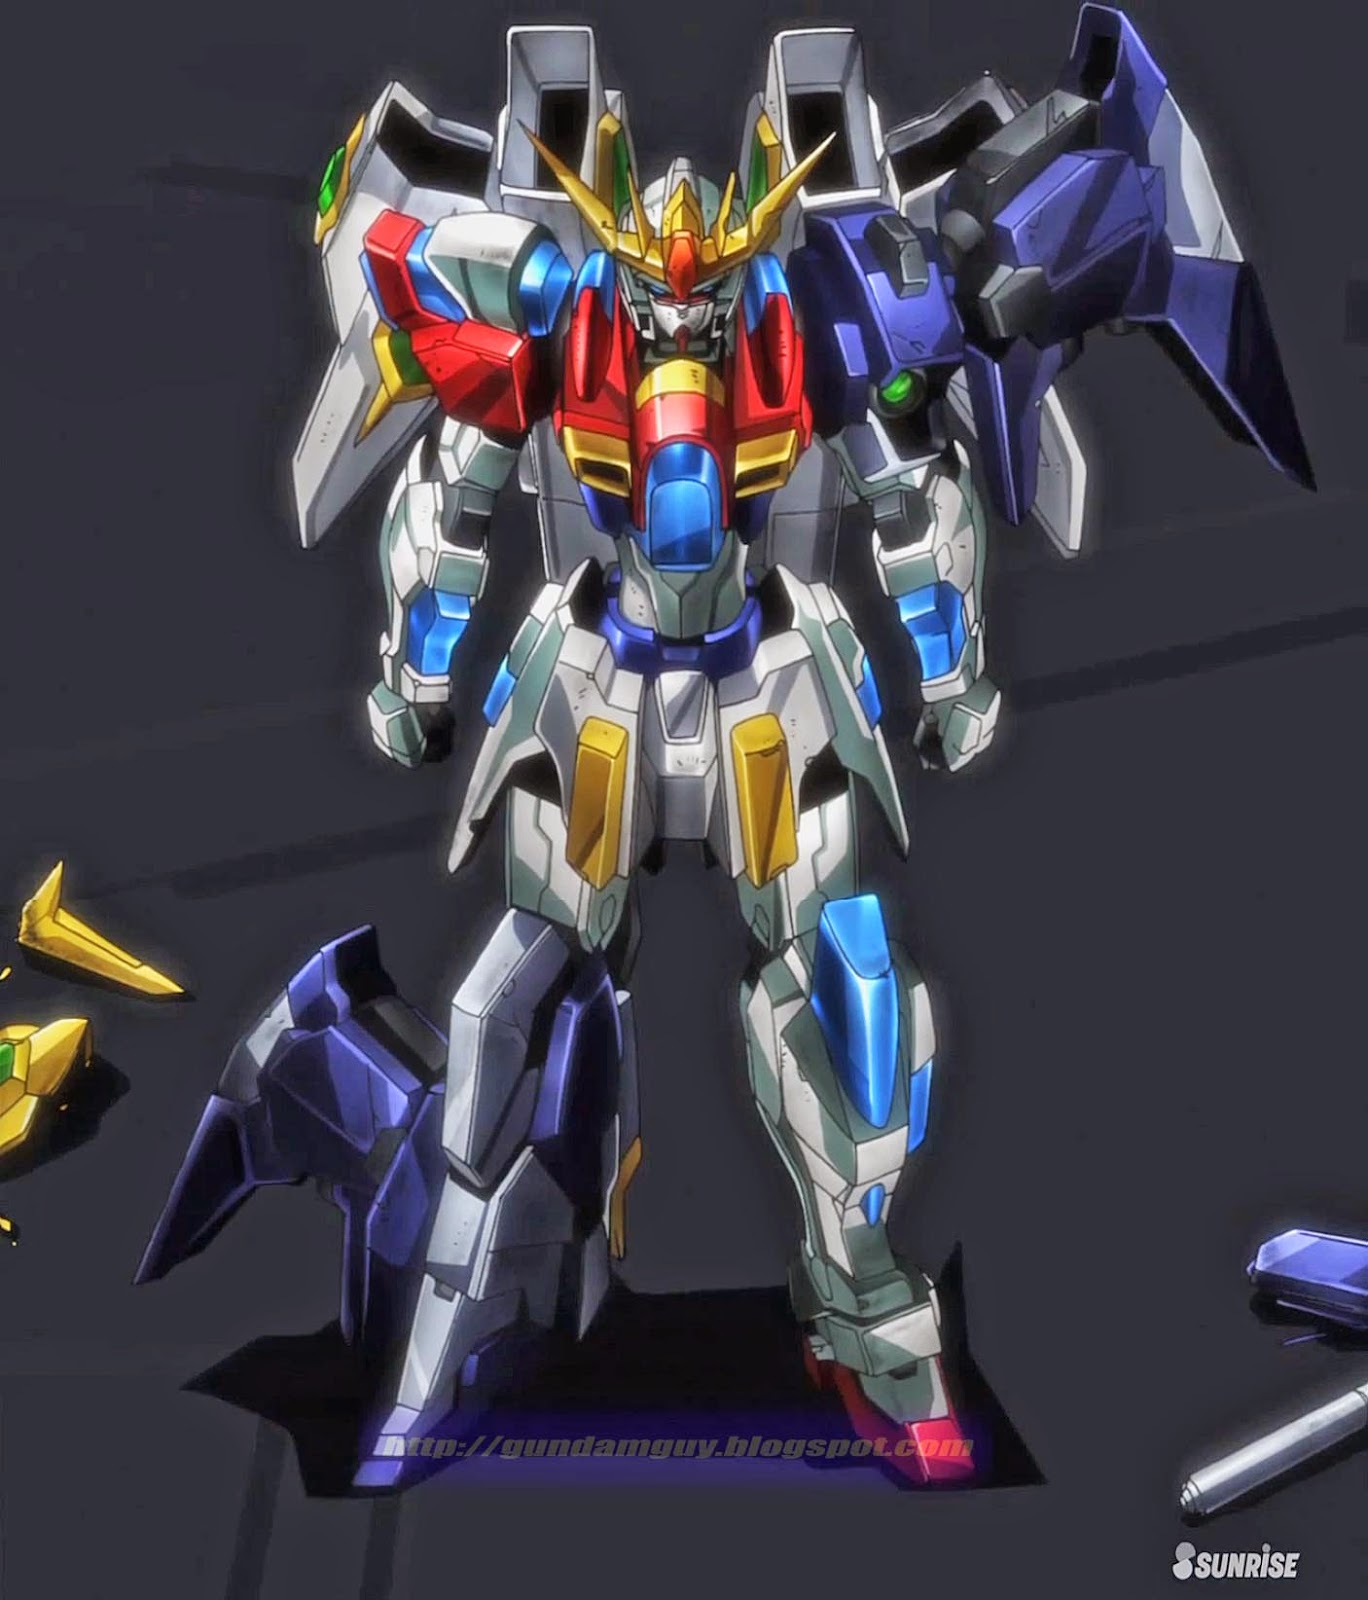 Gundam Build Fighters Try Build Burning Gundam Wallpaper Team Try Fighters Try Burning